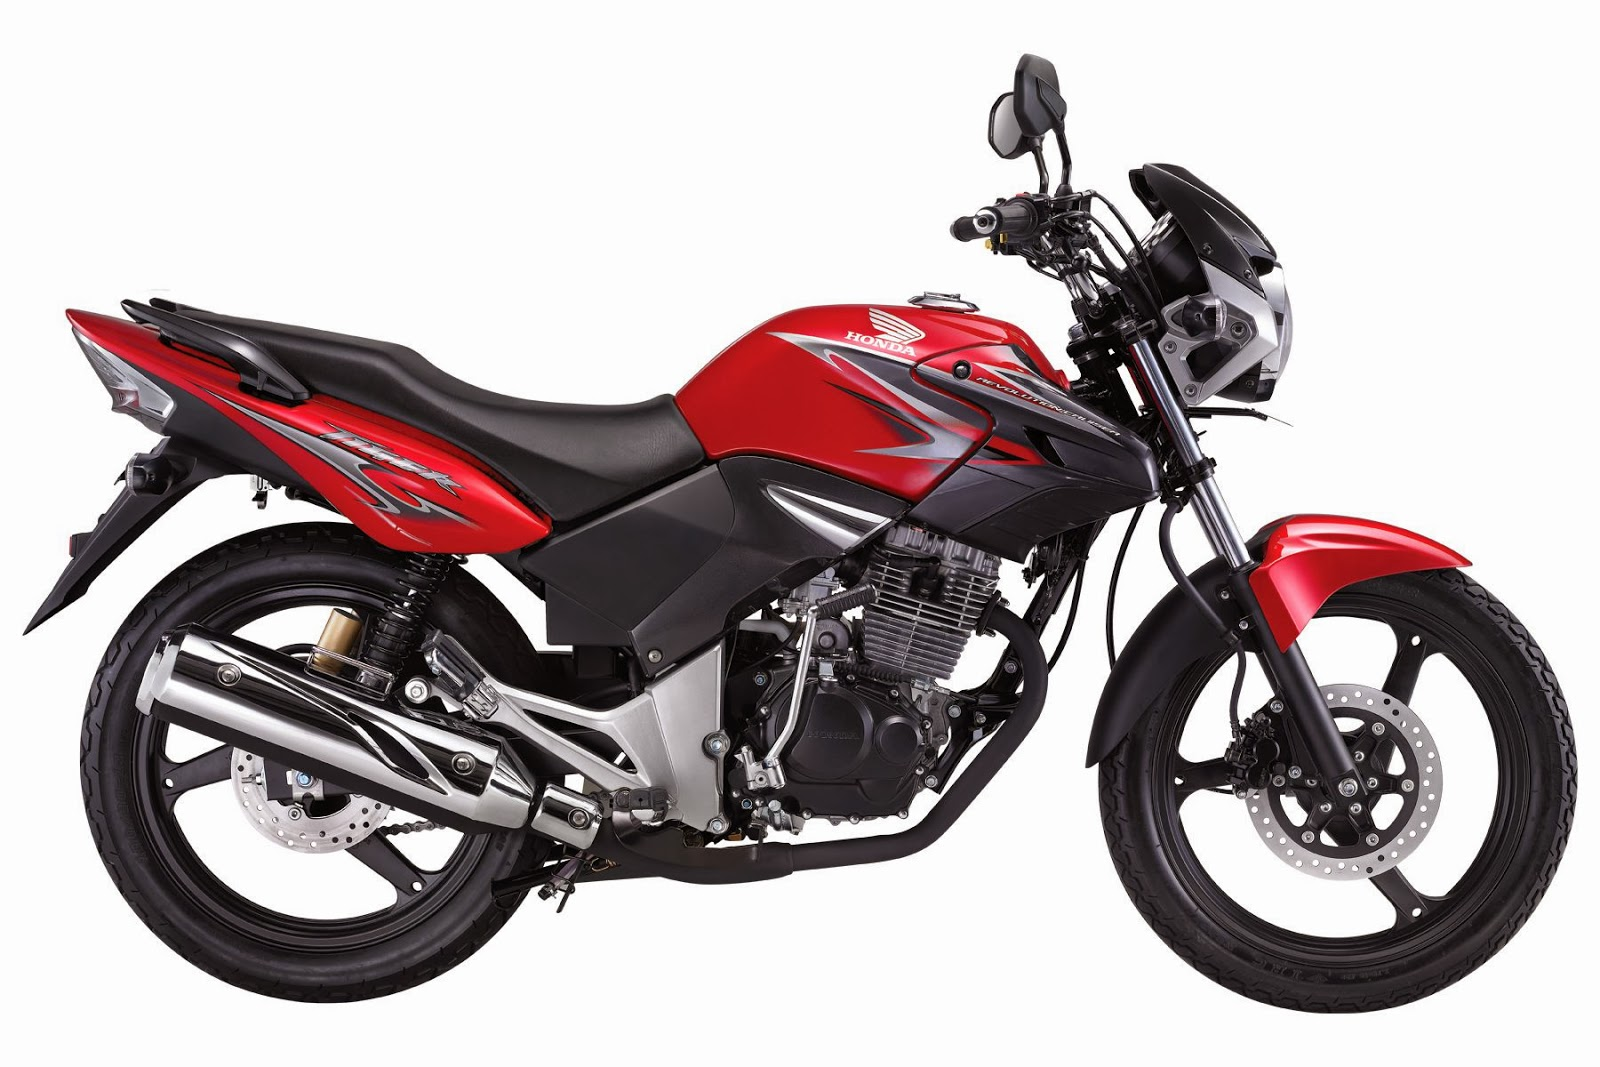 Perbandingan New Yamaha Vixion Vs New Honda Tiger